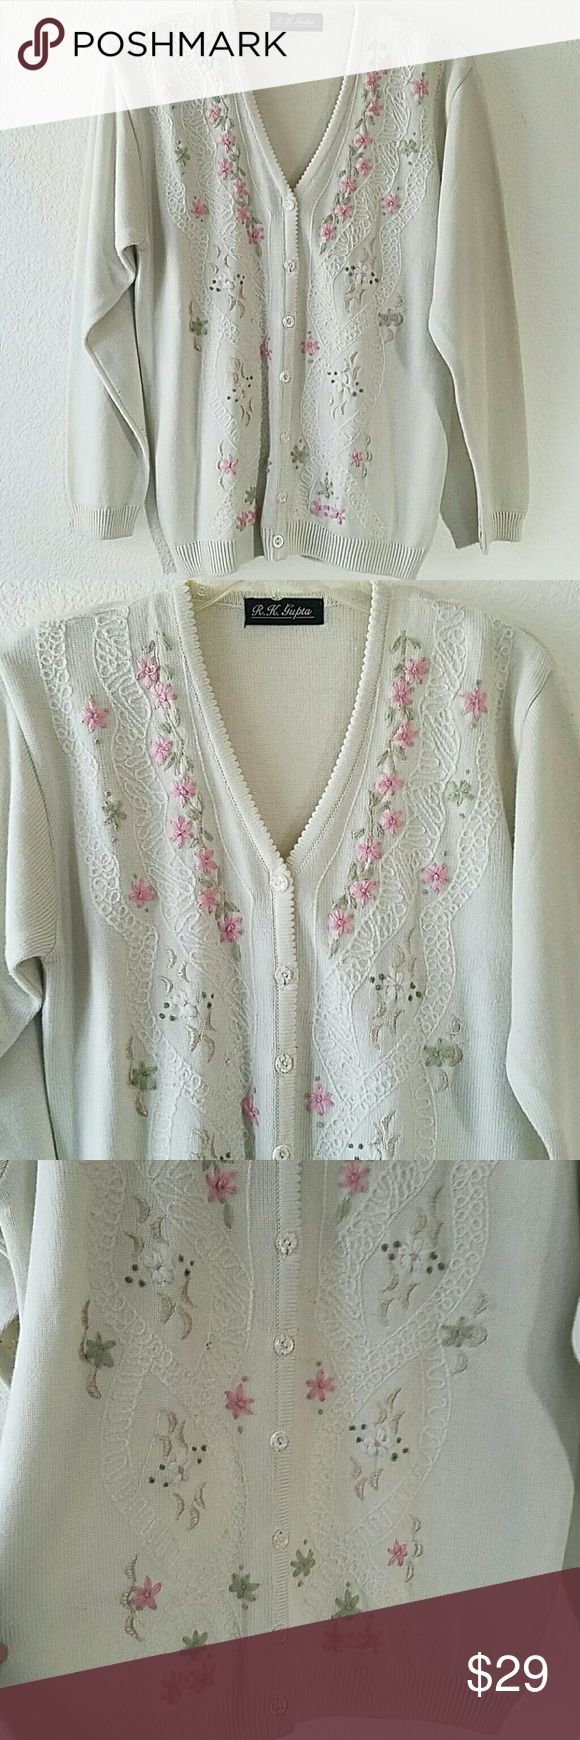 """Floral Front Button Cardigan Beautiful like new floral button front cardigan. Used only once. No stains or damages. Approx L of cardigan 26"""". Armpit to armpit approx without stretching 19 1/2"""". Shoulder to shoulder hem 17"""". Ivory color. Sweaters"""